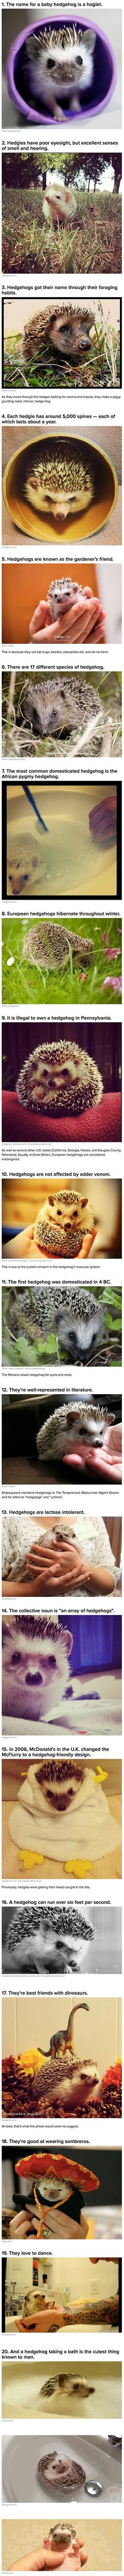 Here are some strange, yet true, things you may not have known about hedgehogs.: